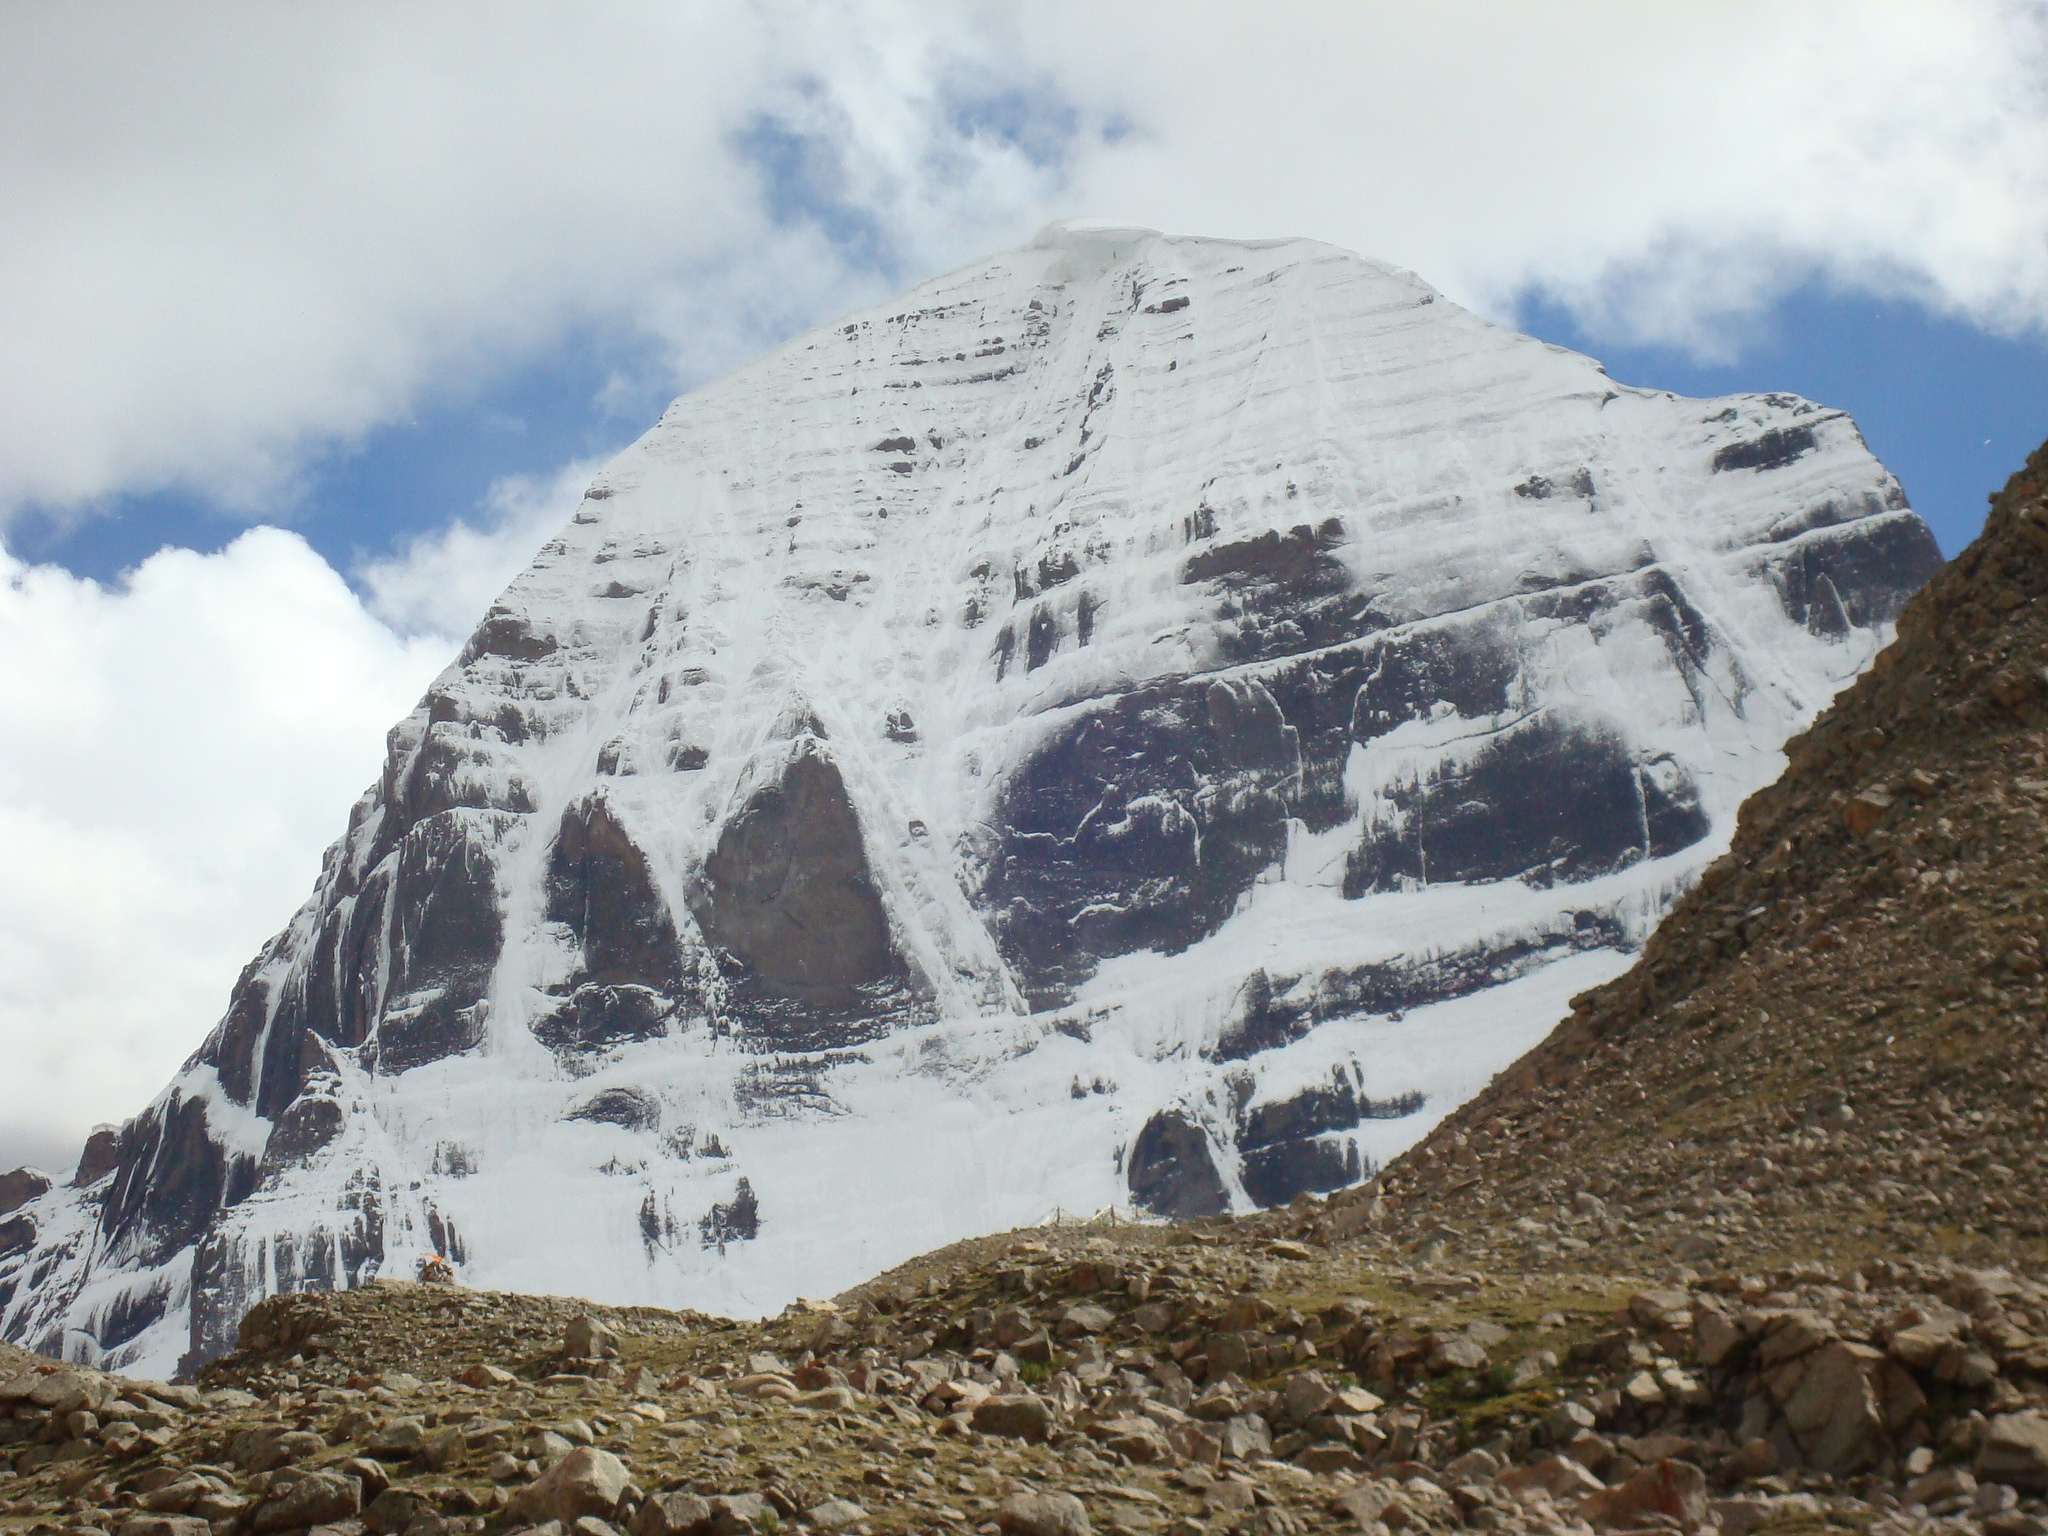 KAILASH YATRA BY HELICOPTER VIA NEPALGUNJ/SIMIKOT/HILSA/TAKLAKOT - 11 DAYS